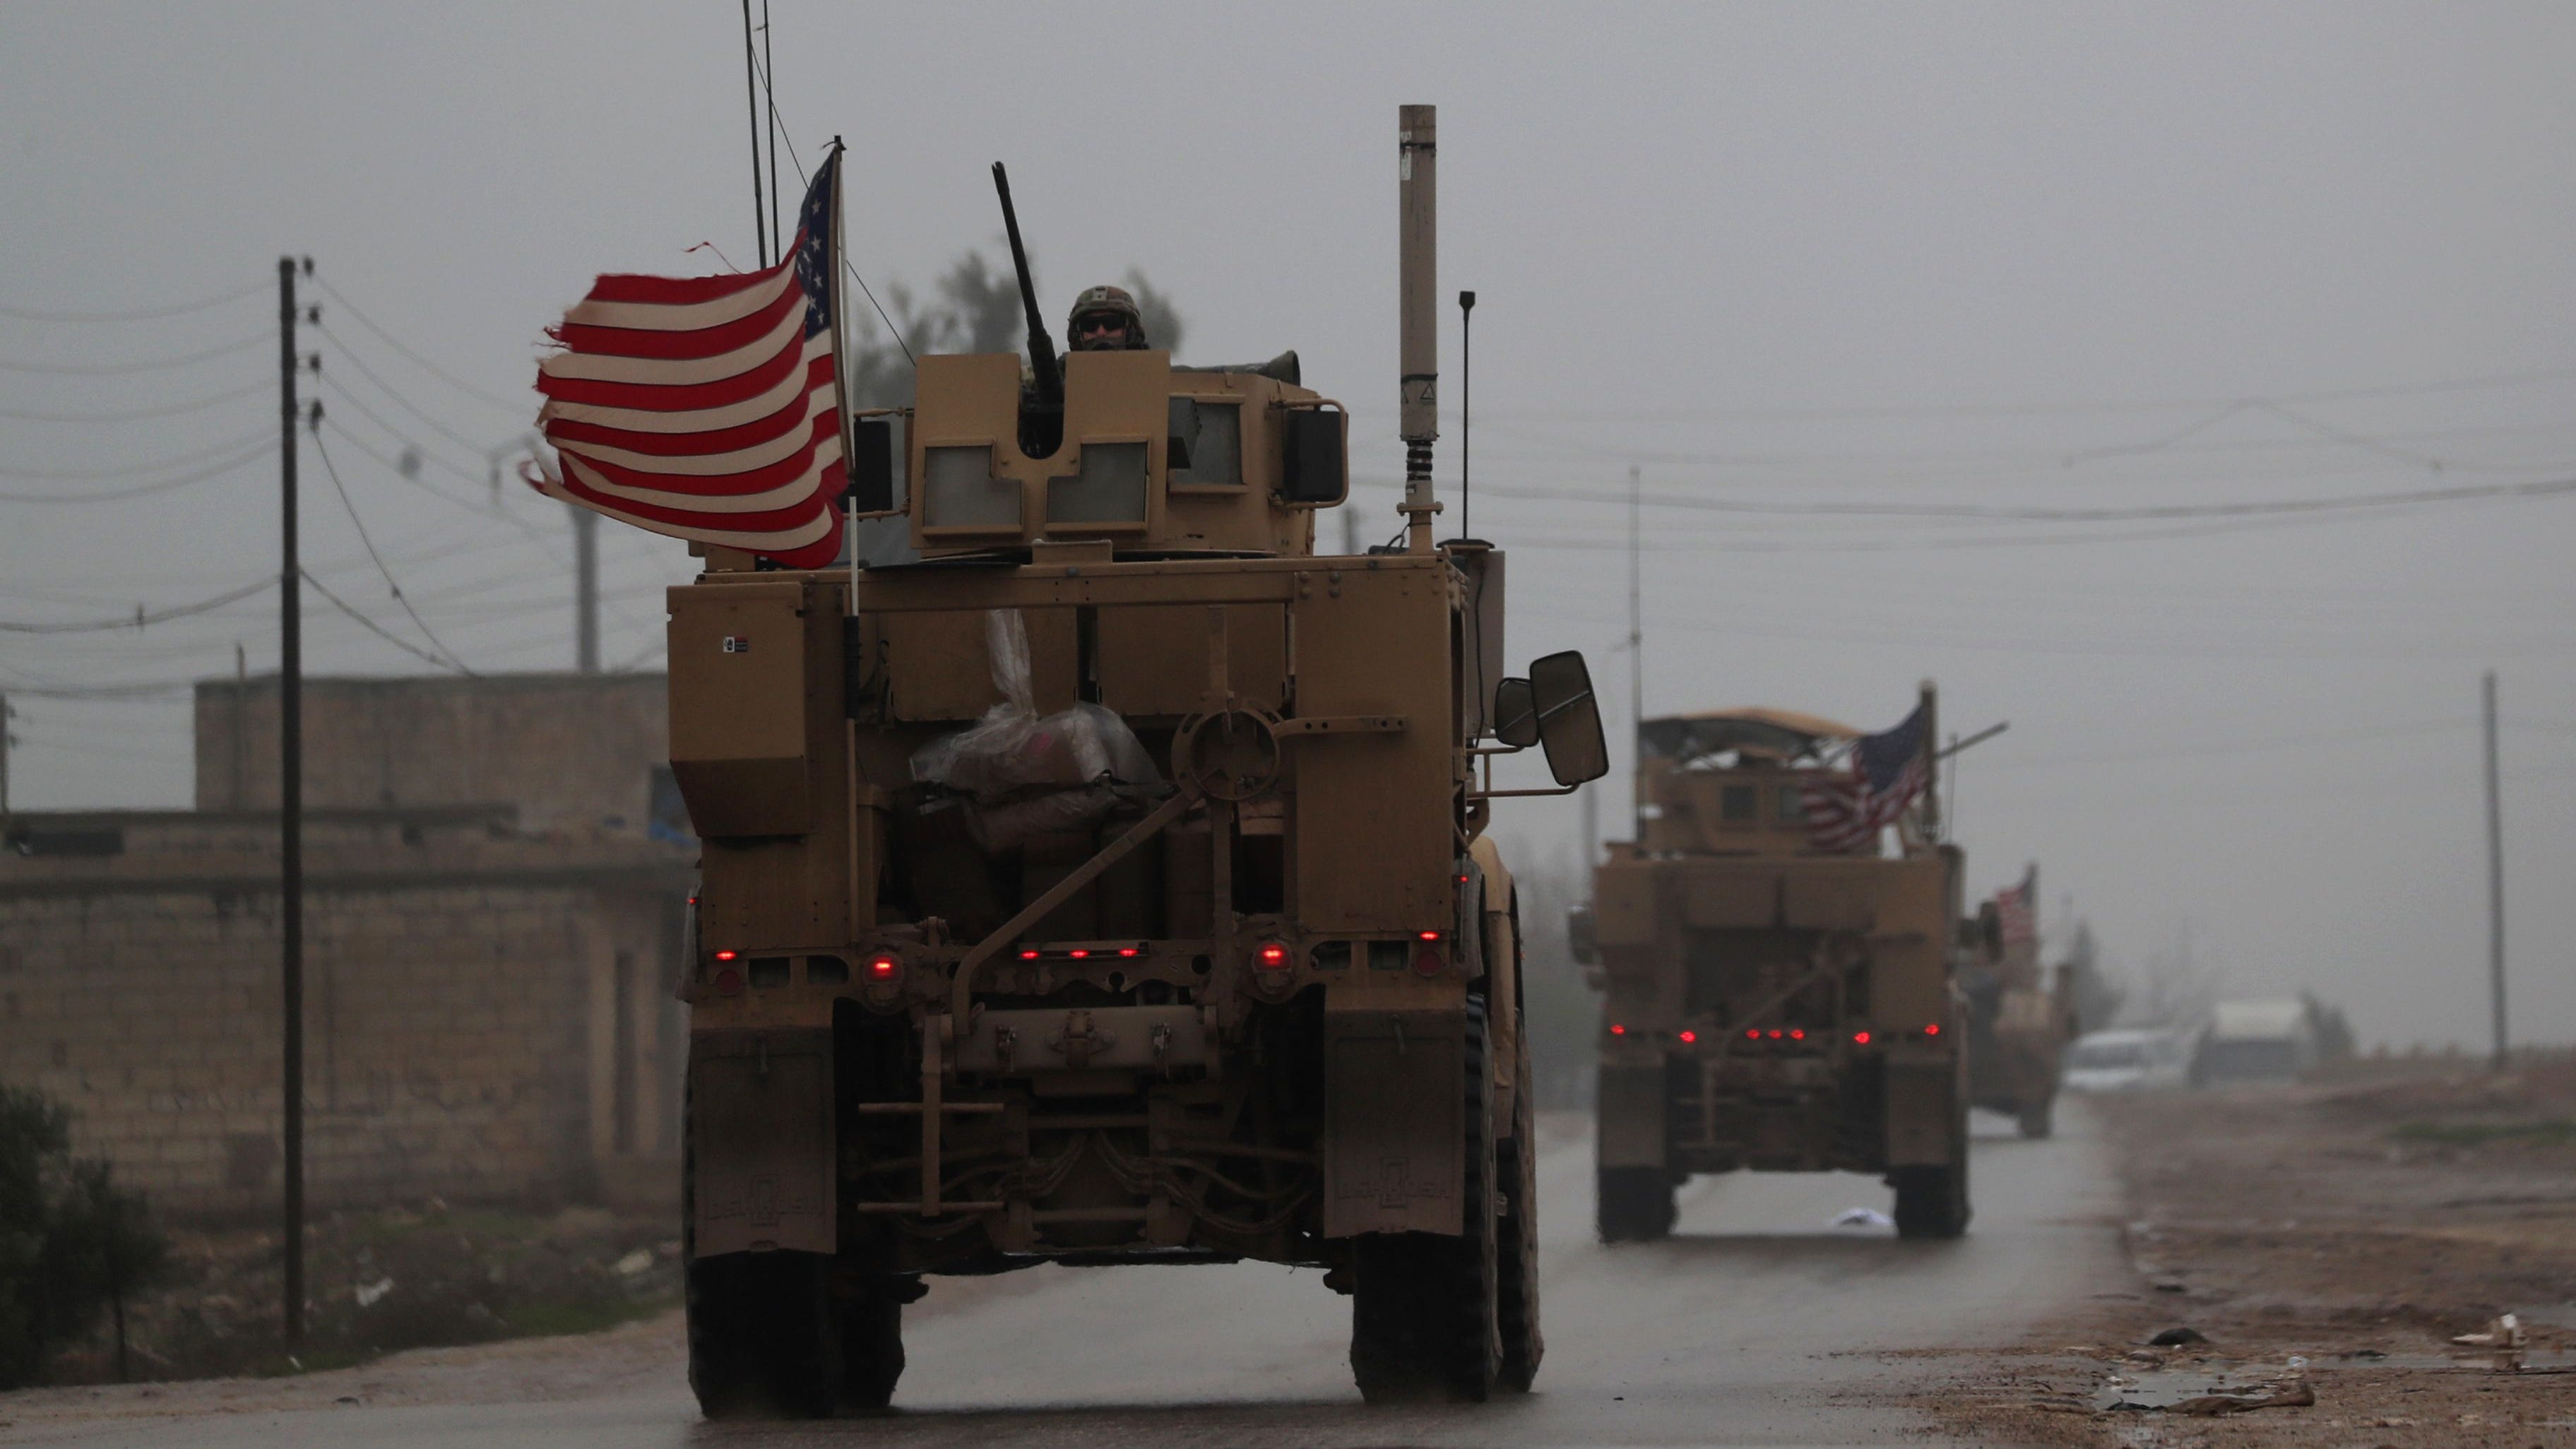 ISIS is defeated. Bring America's troops home.